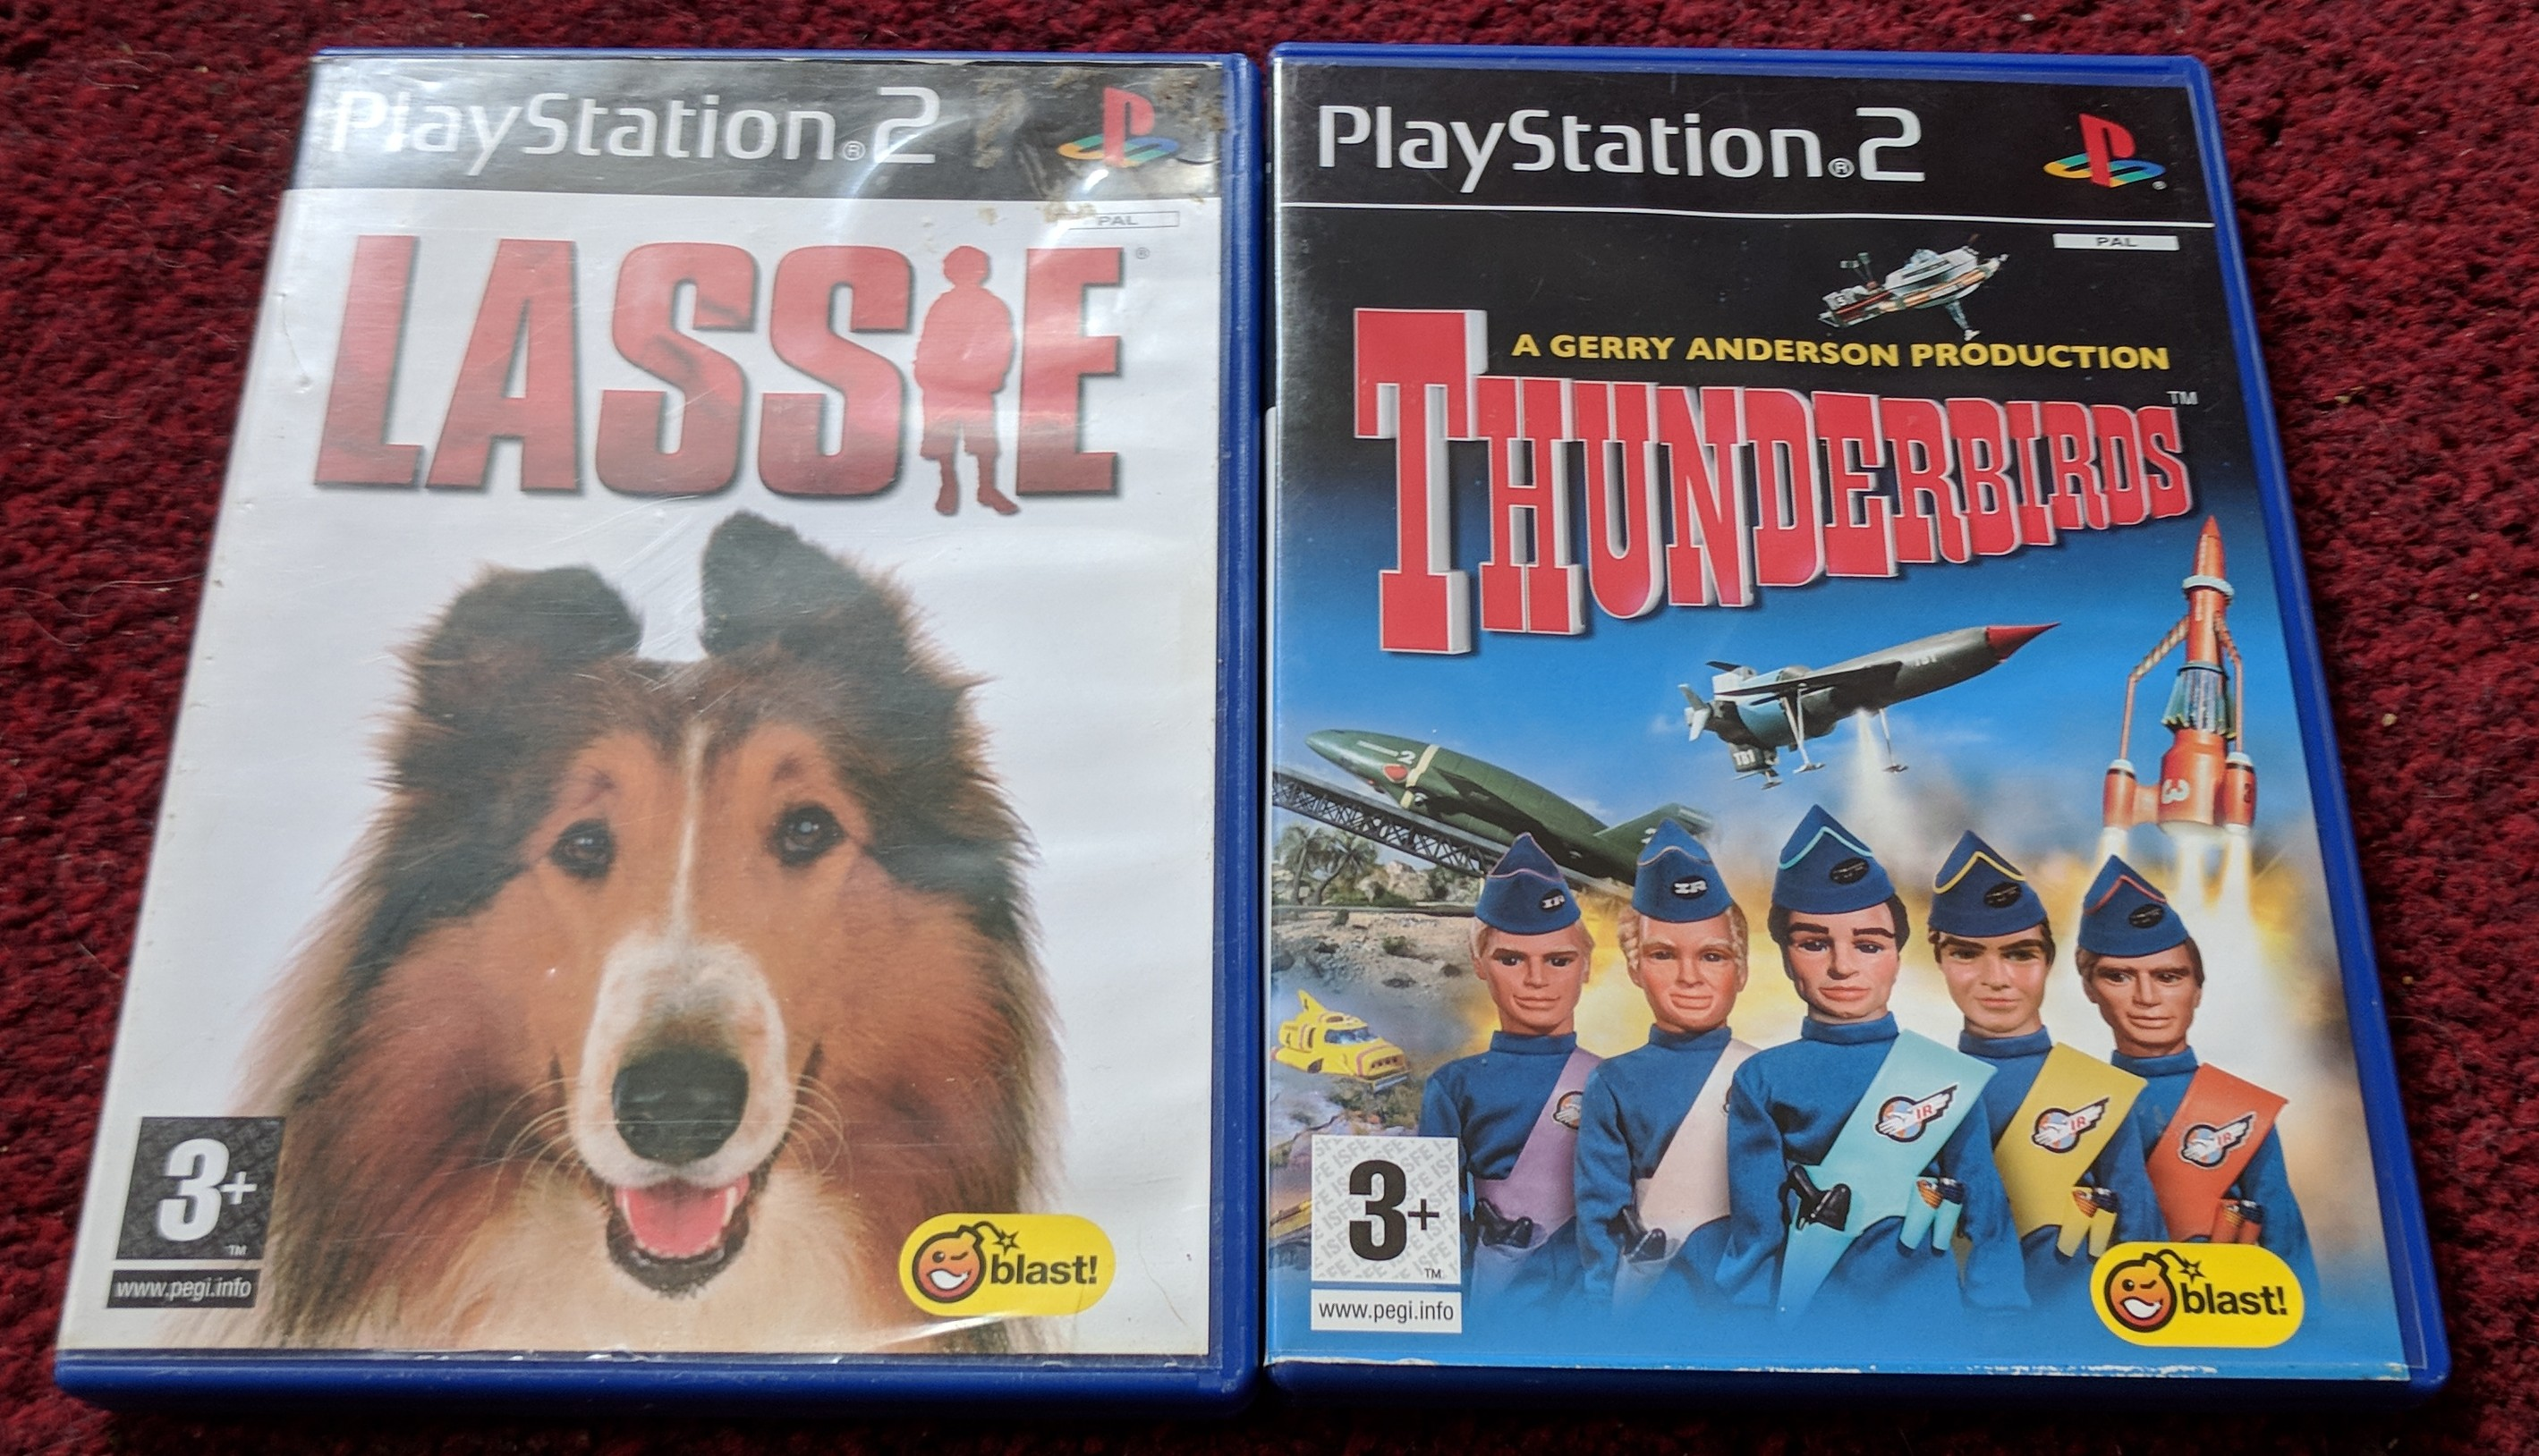 Playstation 2 Blast games